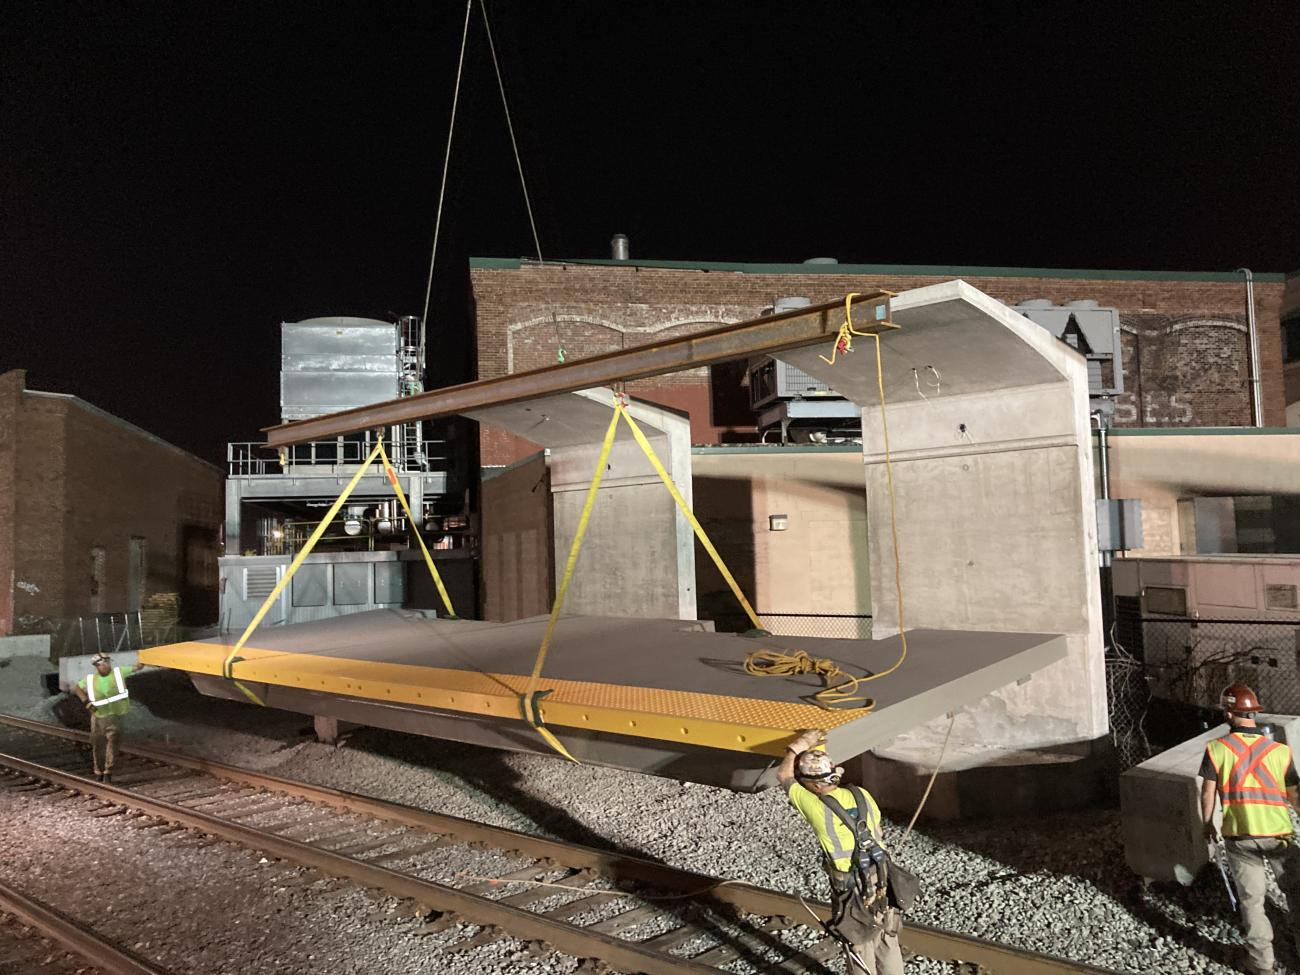 At night, workers guide a section of train platform into place at the new Chelsea Commuter Rail Station.